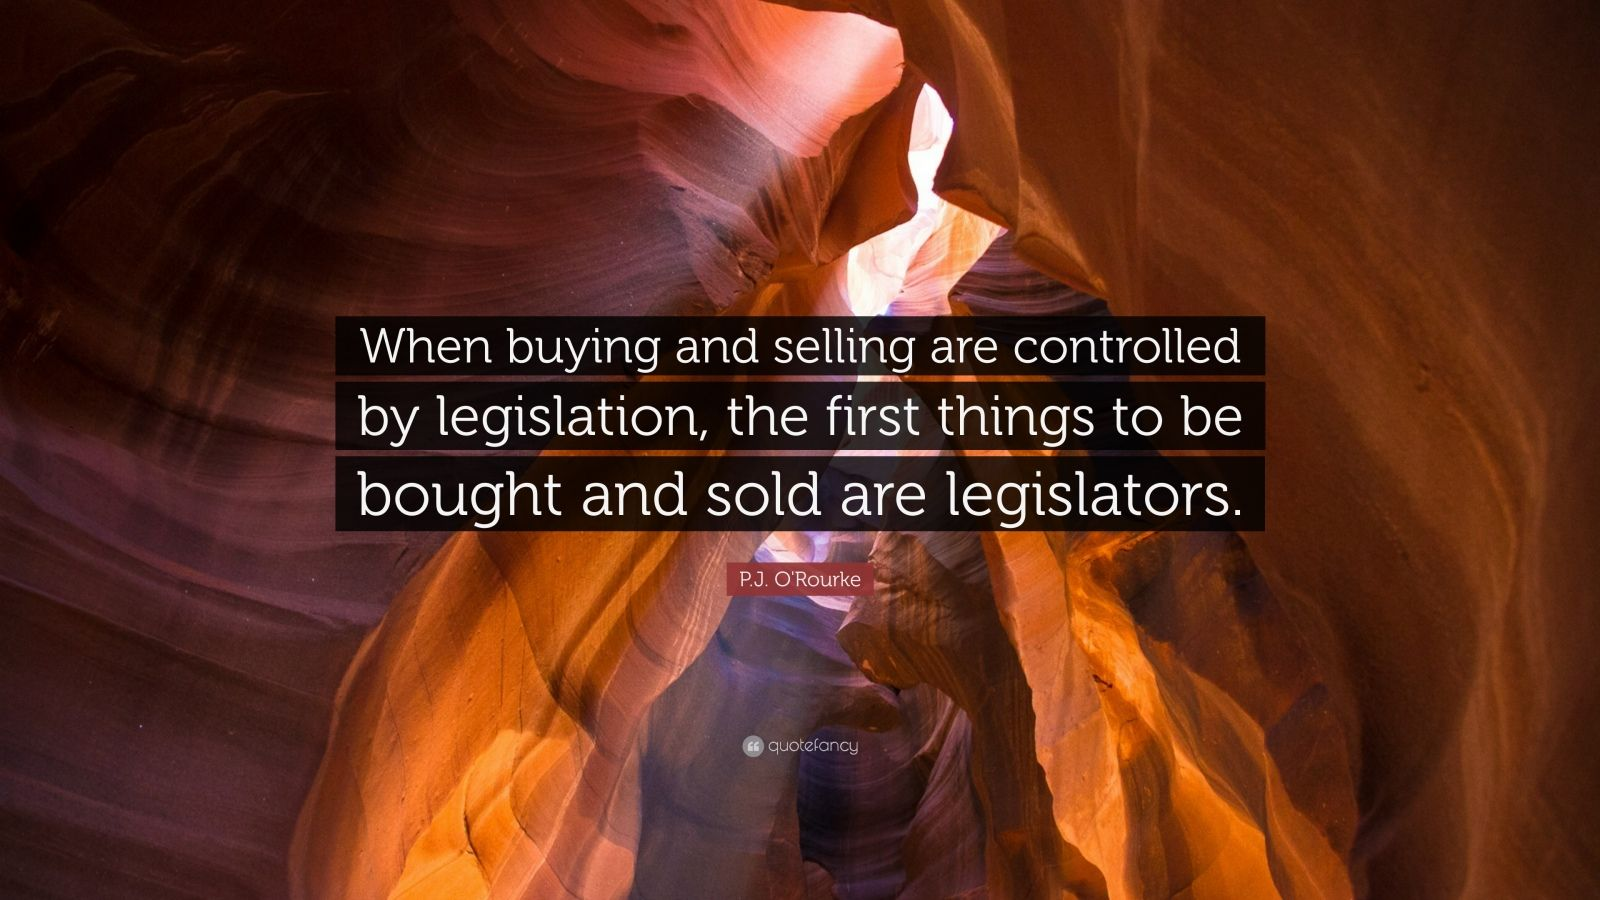 """P.J. O'Rourke Quote: """"When buying and selling are controlled by legislation, the first things to be bought and sold are legislators."""""""